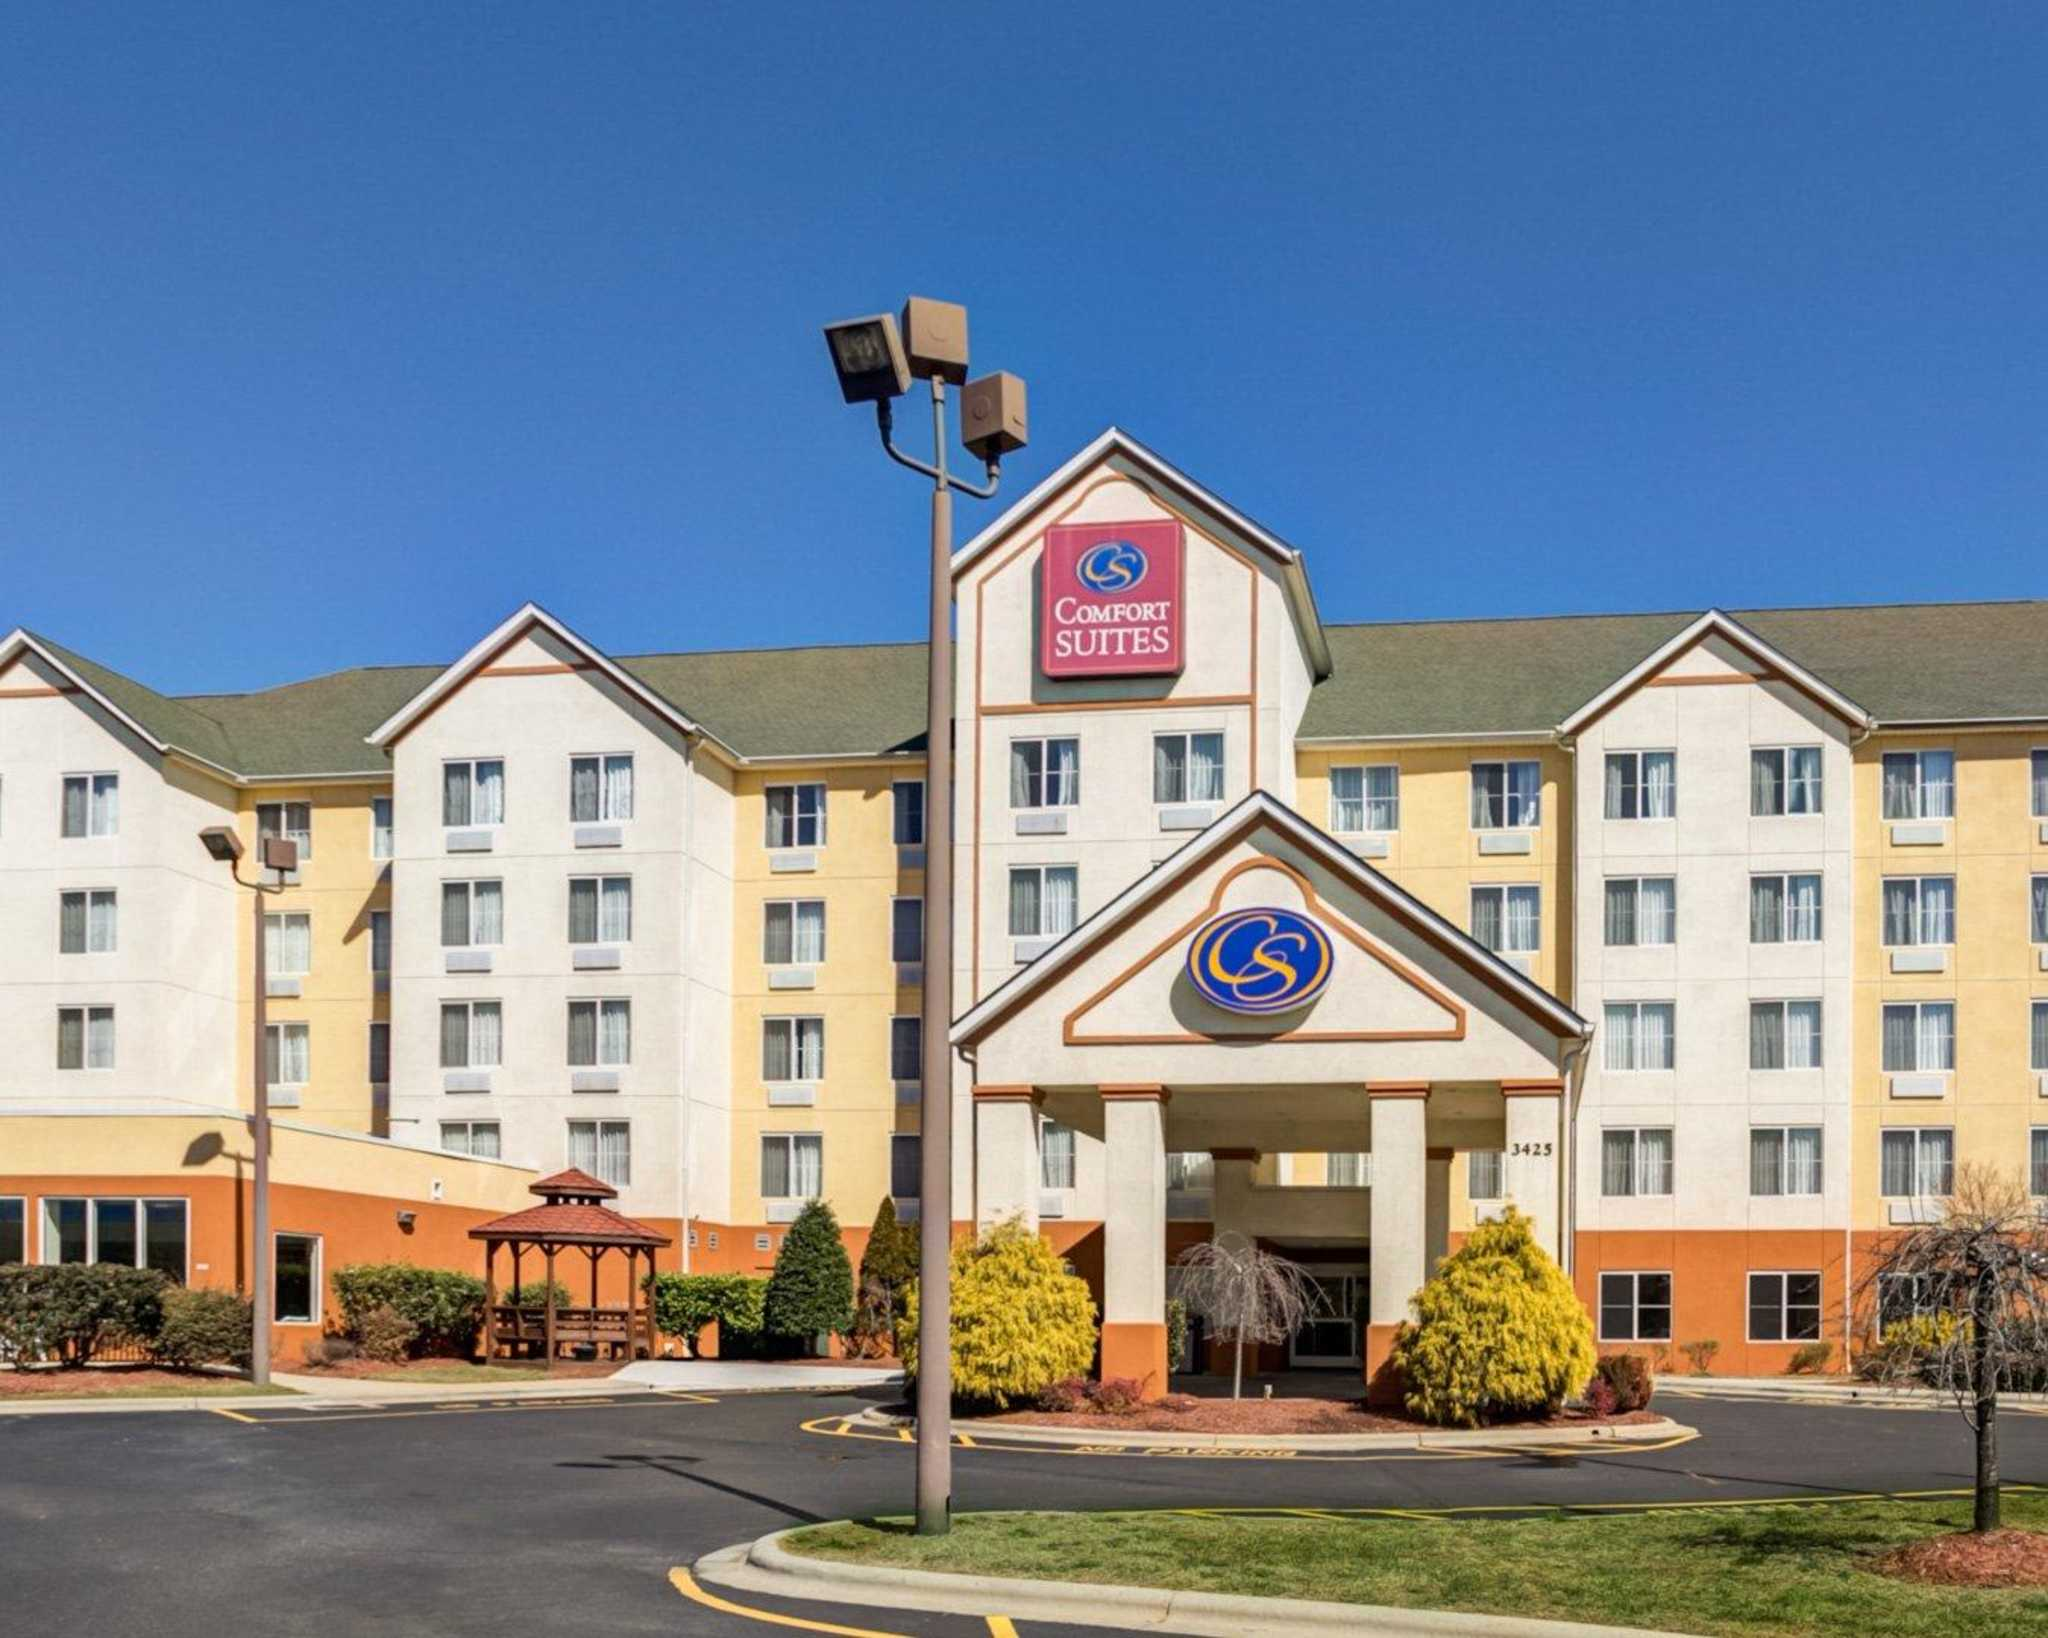 Comfort suites airport in charlotte nc 704 971 4 for Motels close to charlotte motor speedway